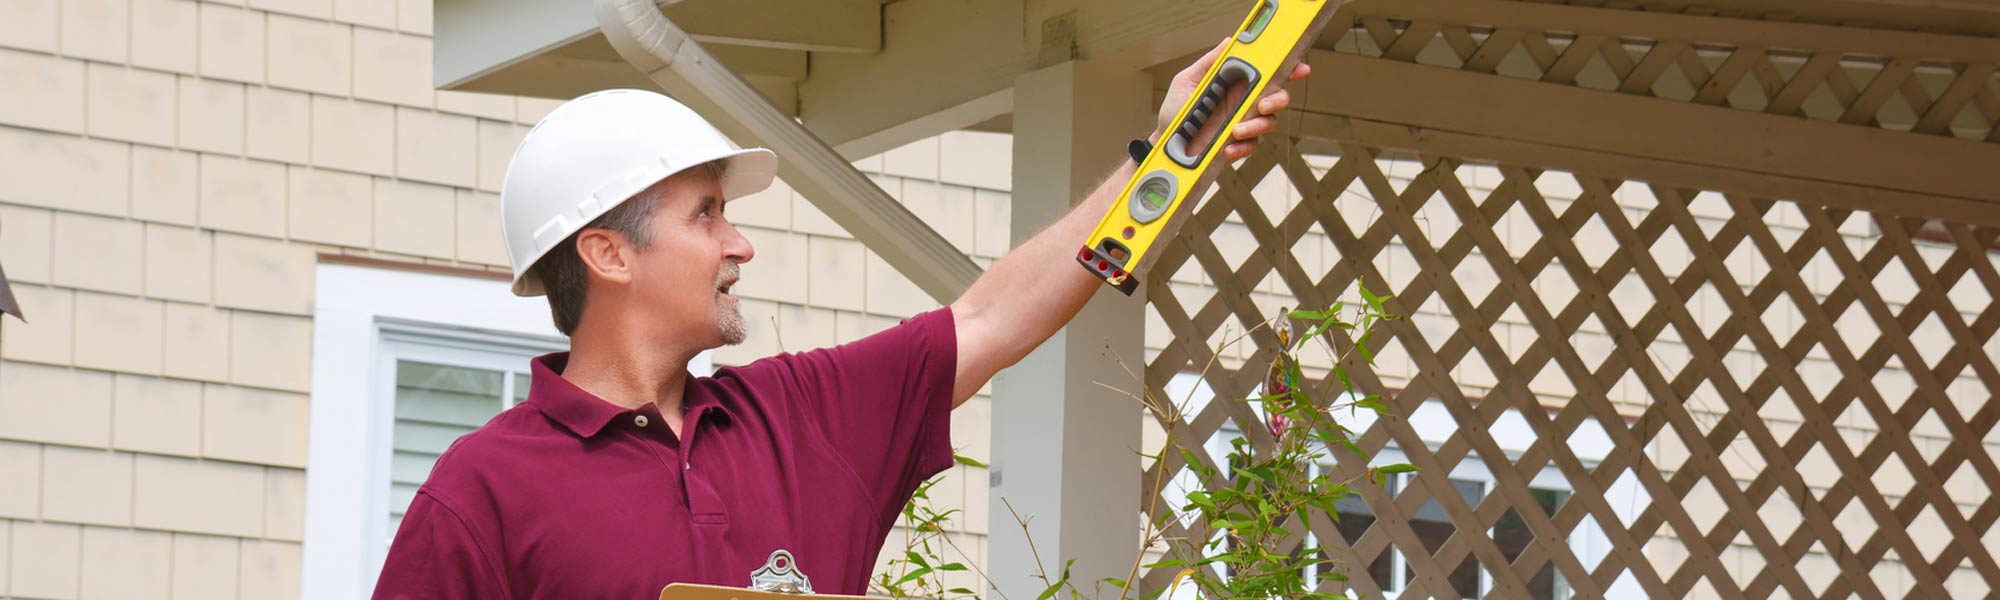 residential home inspector with level